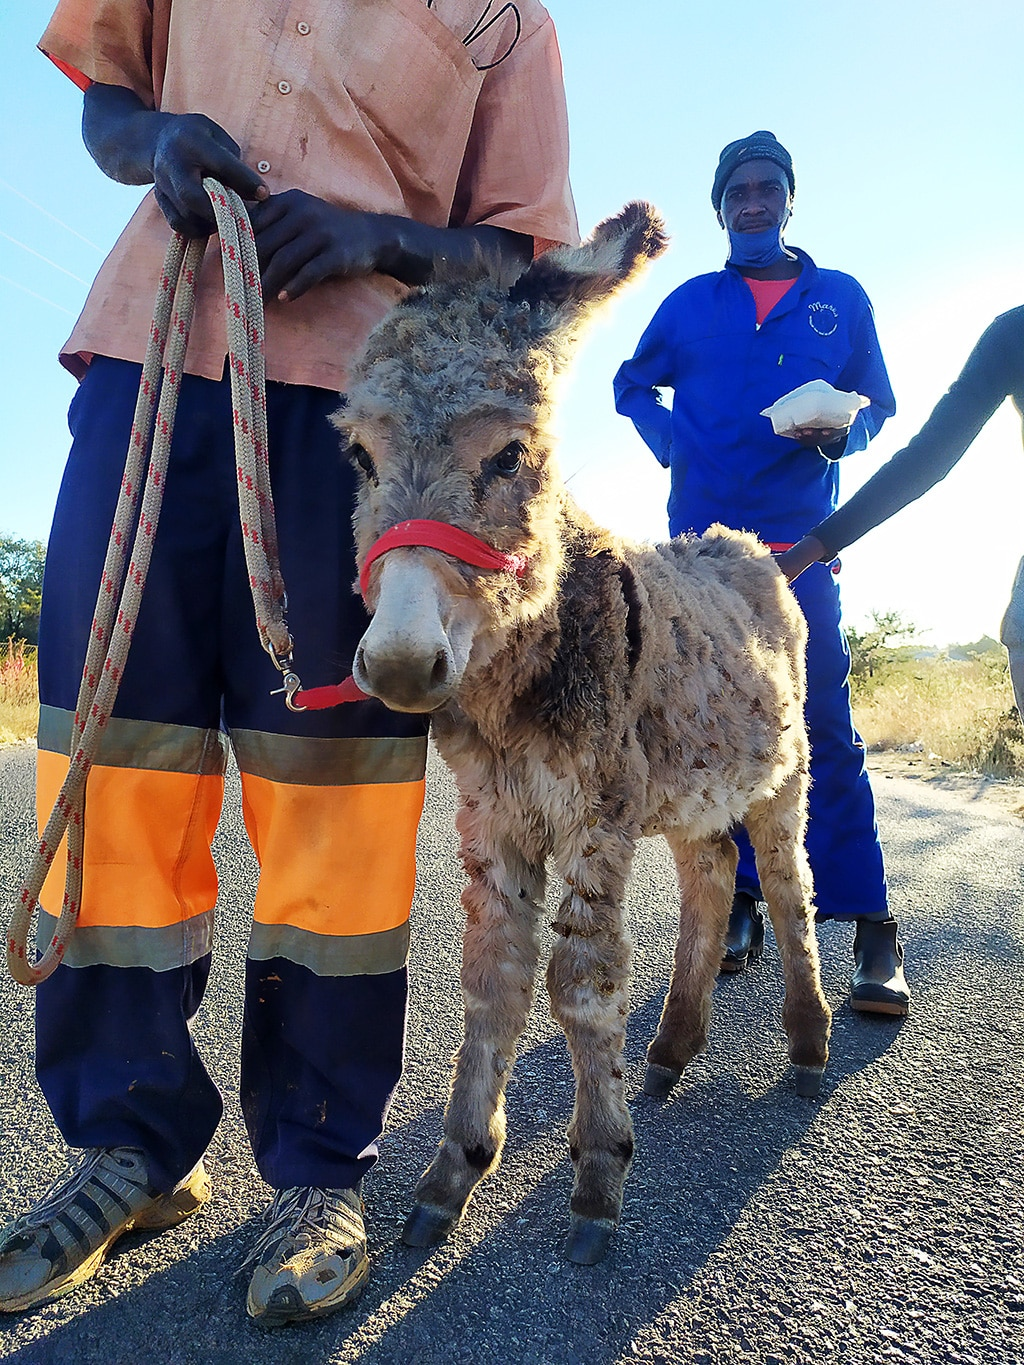 We delivered two tons of hay to save starving donkeys 1